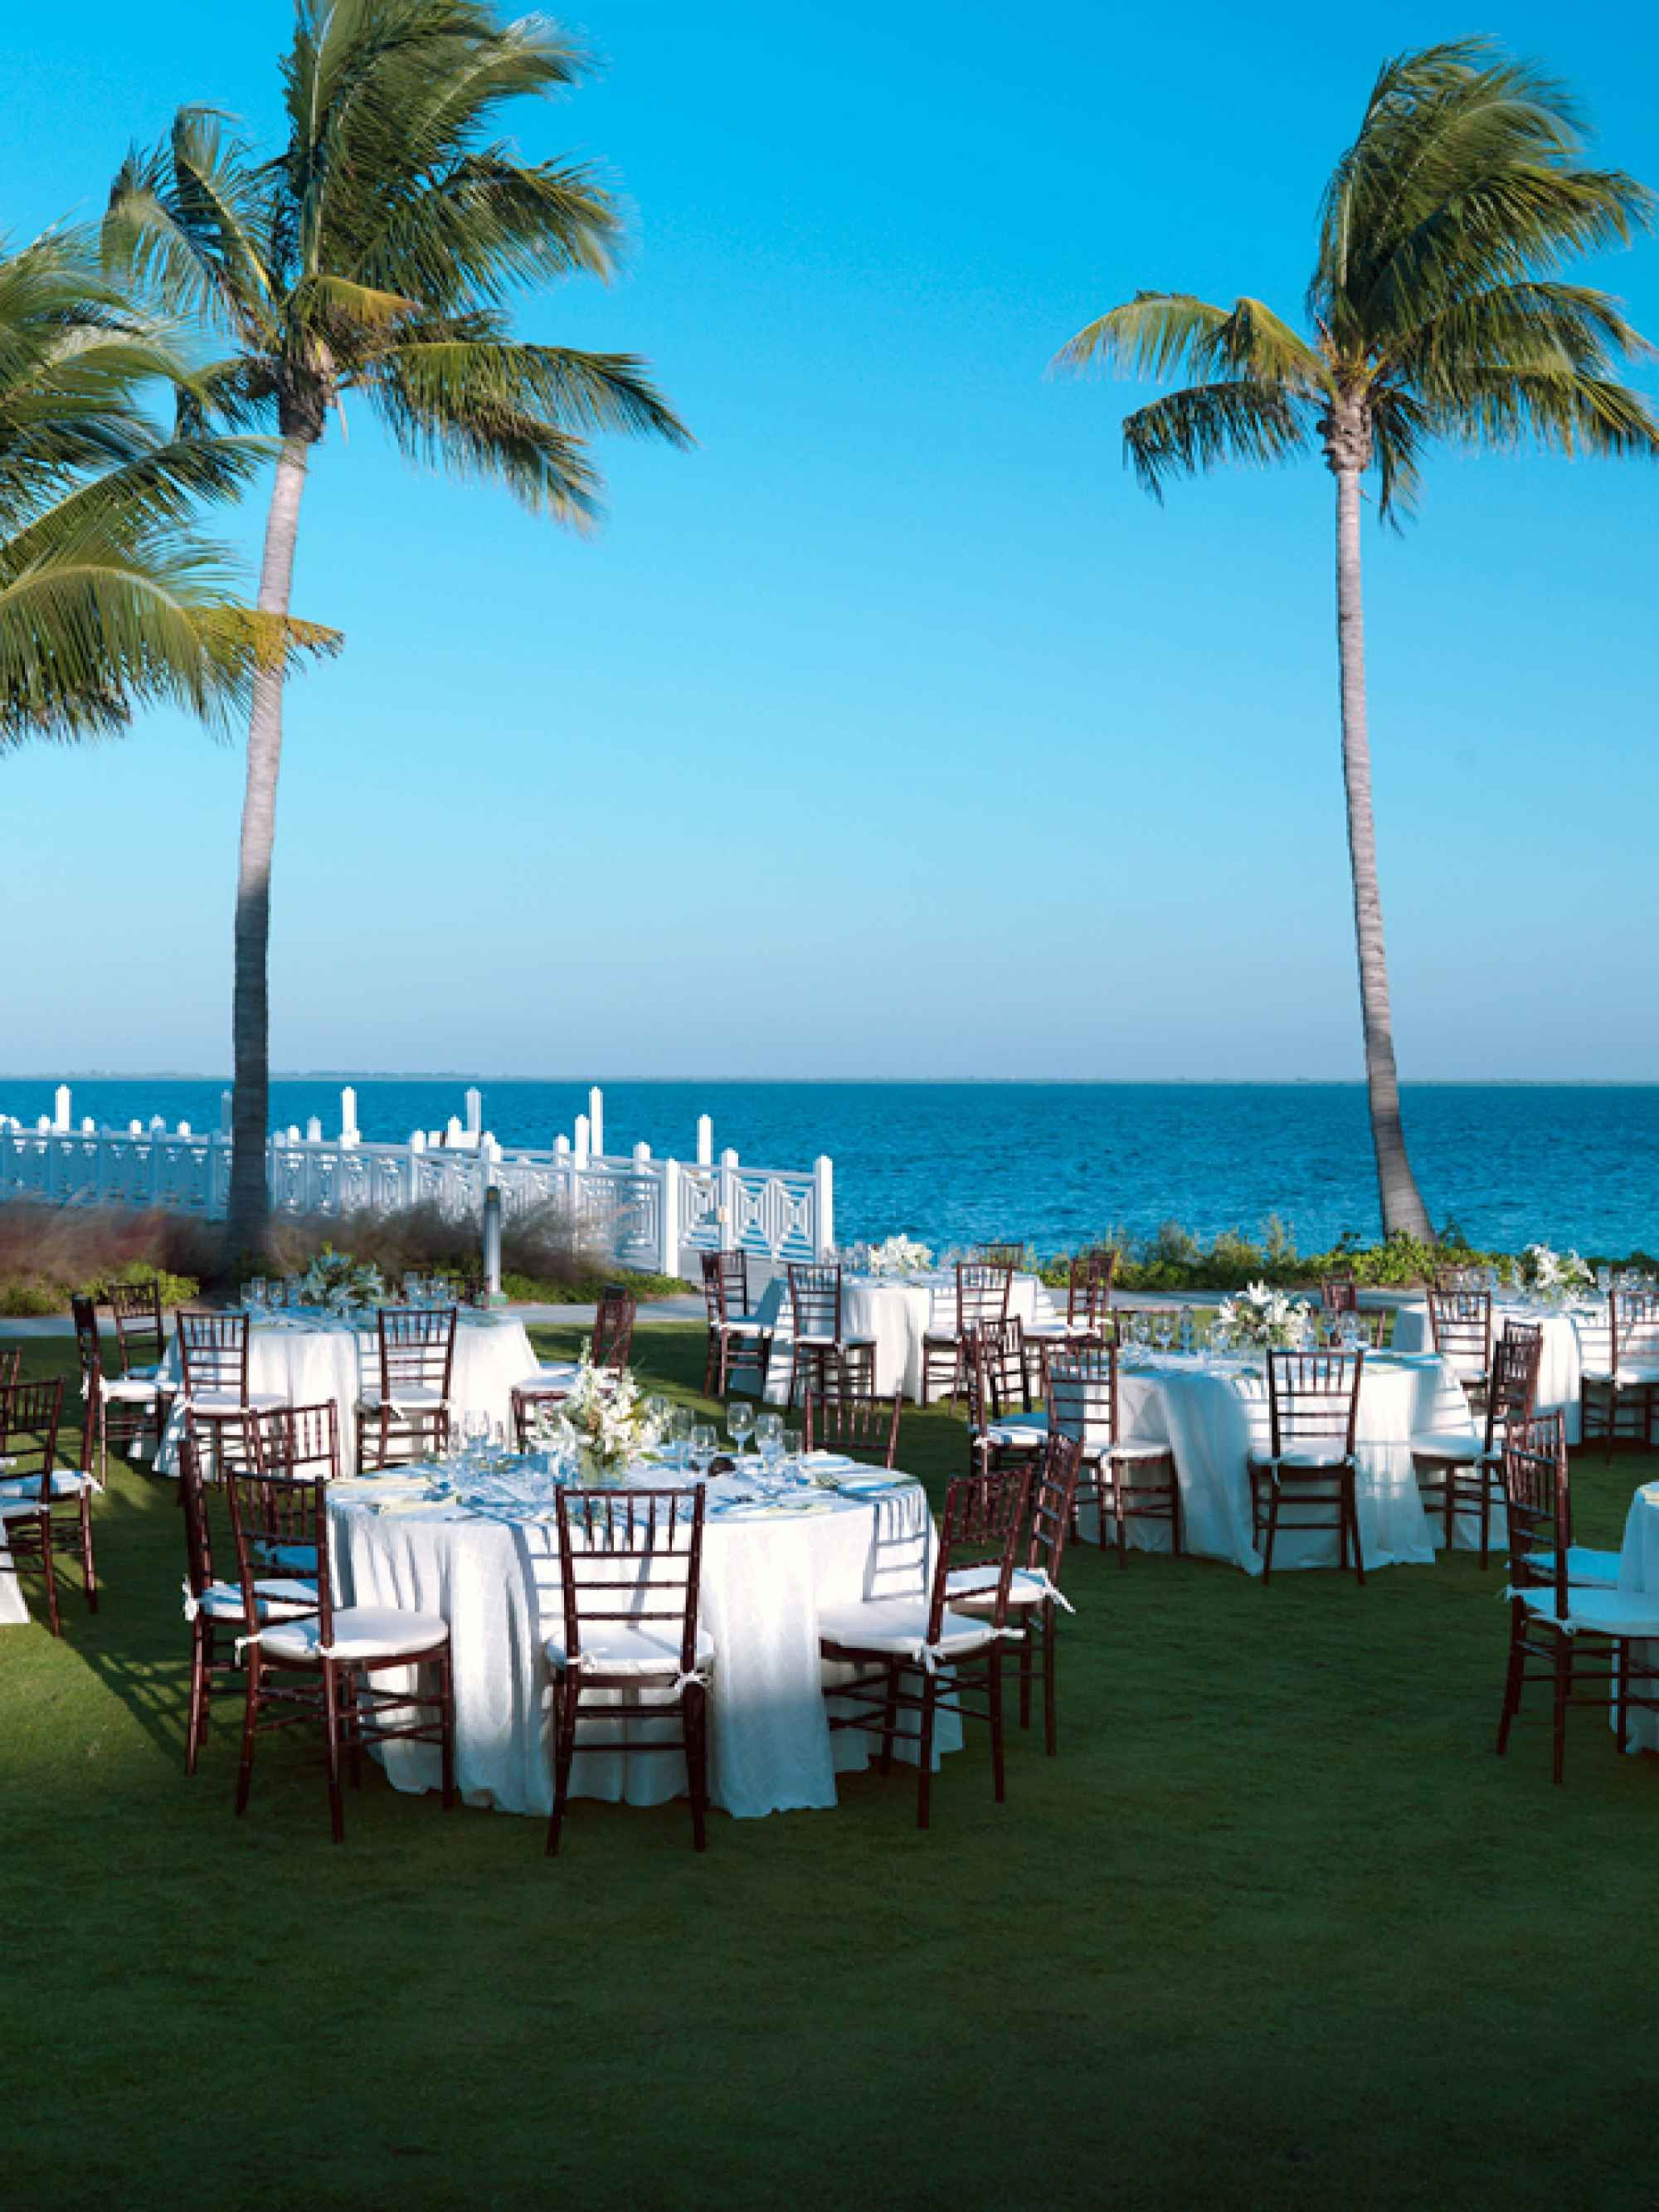 Top florida wedding venues island resort wedding venues and top florida wedding venues for florida destination weddings best places to get married in florida junglespirit Gallery